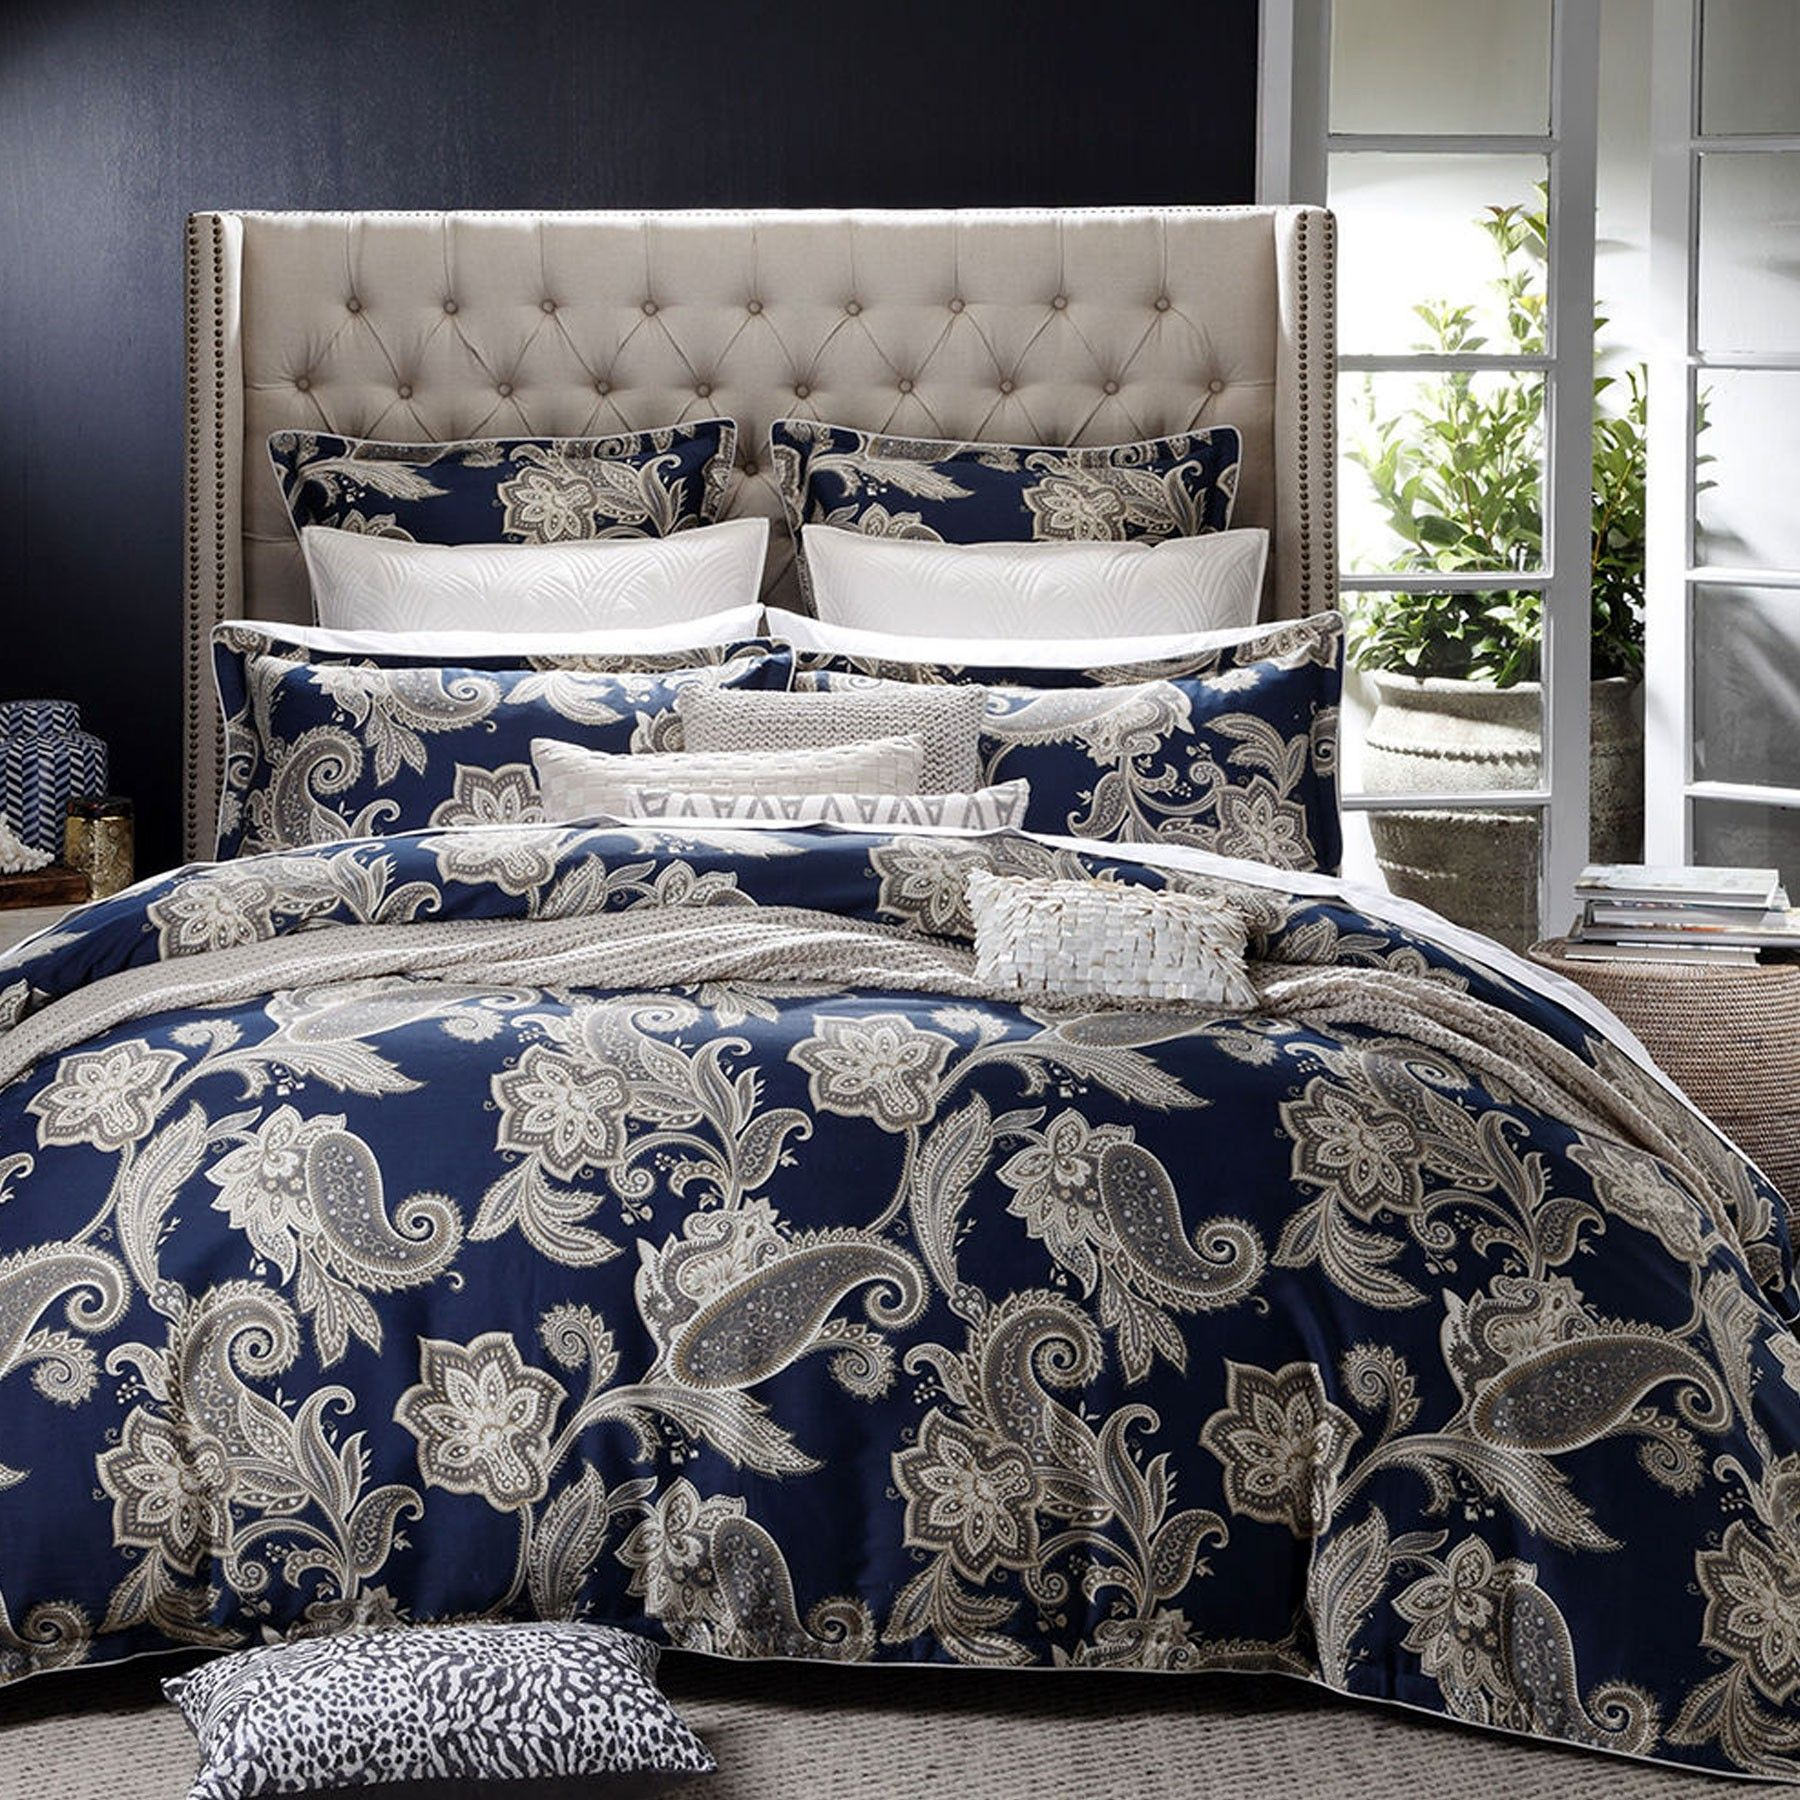 Alexandra Navy Quilt Cover Set by Private Collection | Quilt Cover ... : quilt cover australia buy online - Adamdwight.com